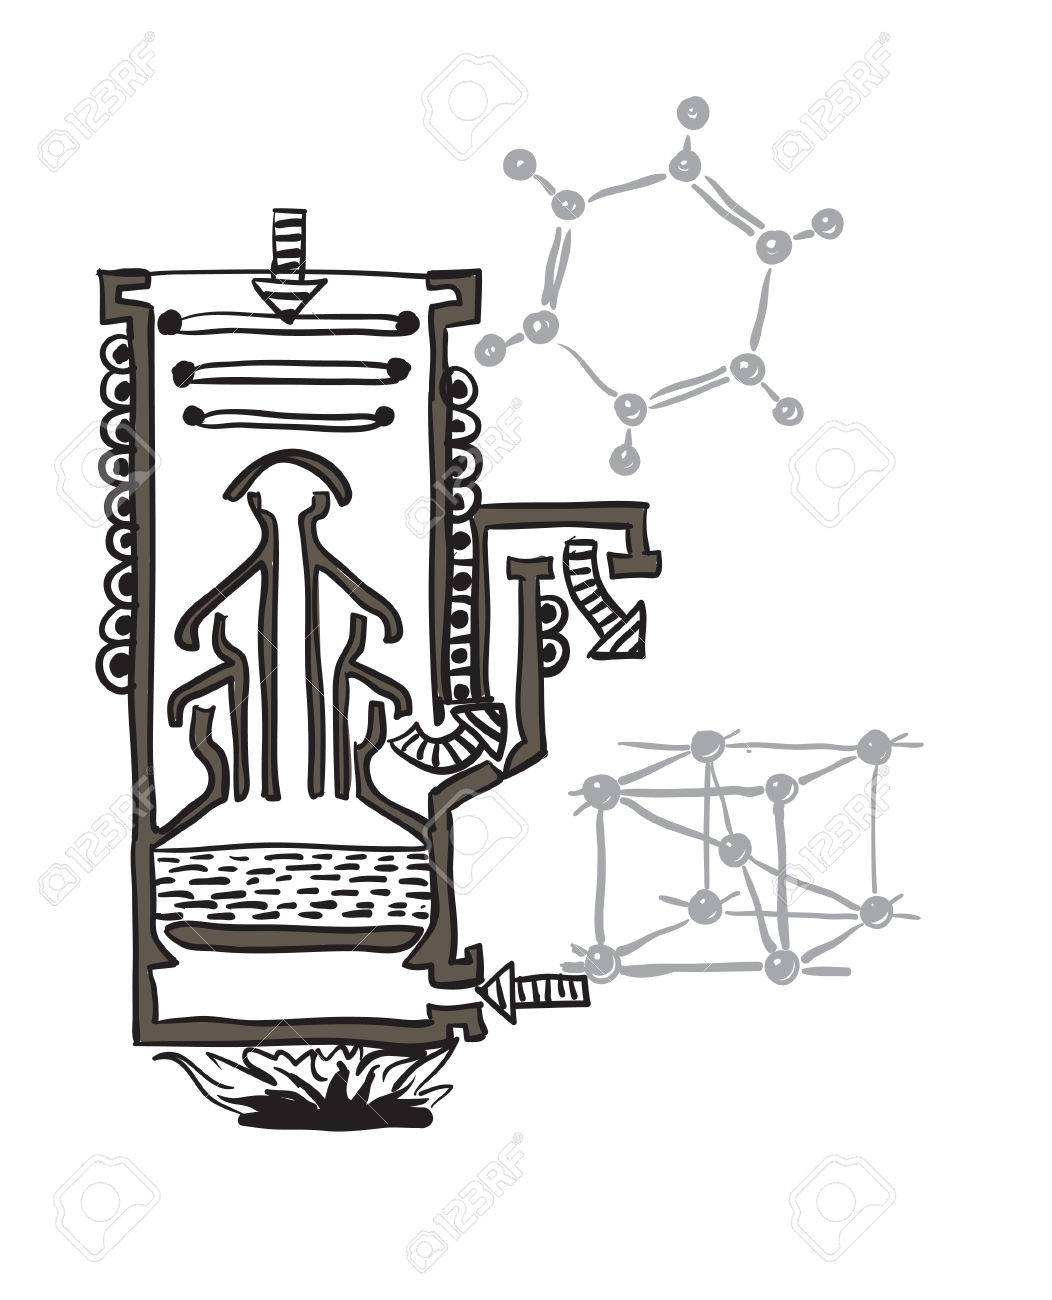 1052x1300 Drawing Scheme Of Mercury Vacuum Pump Stock Photo, Picture